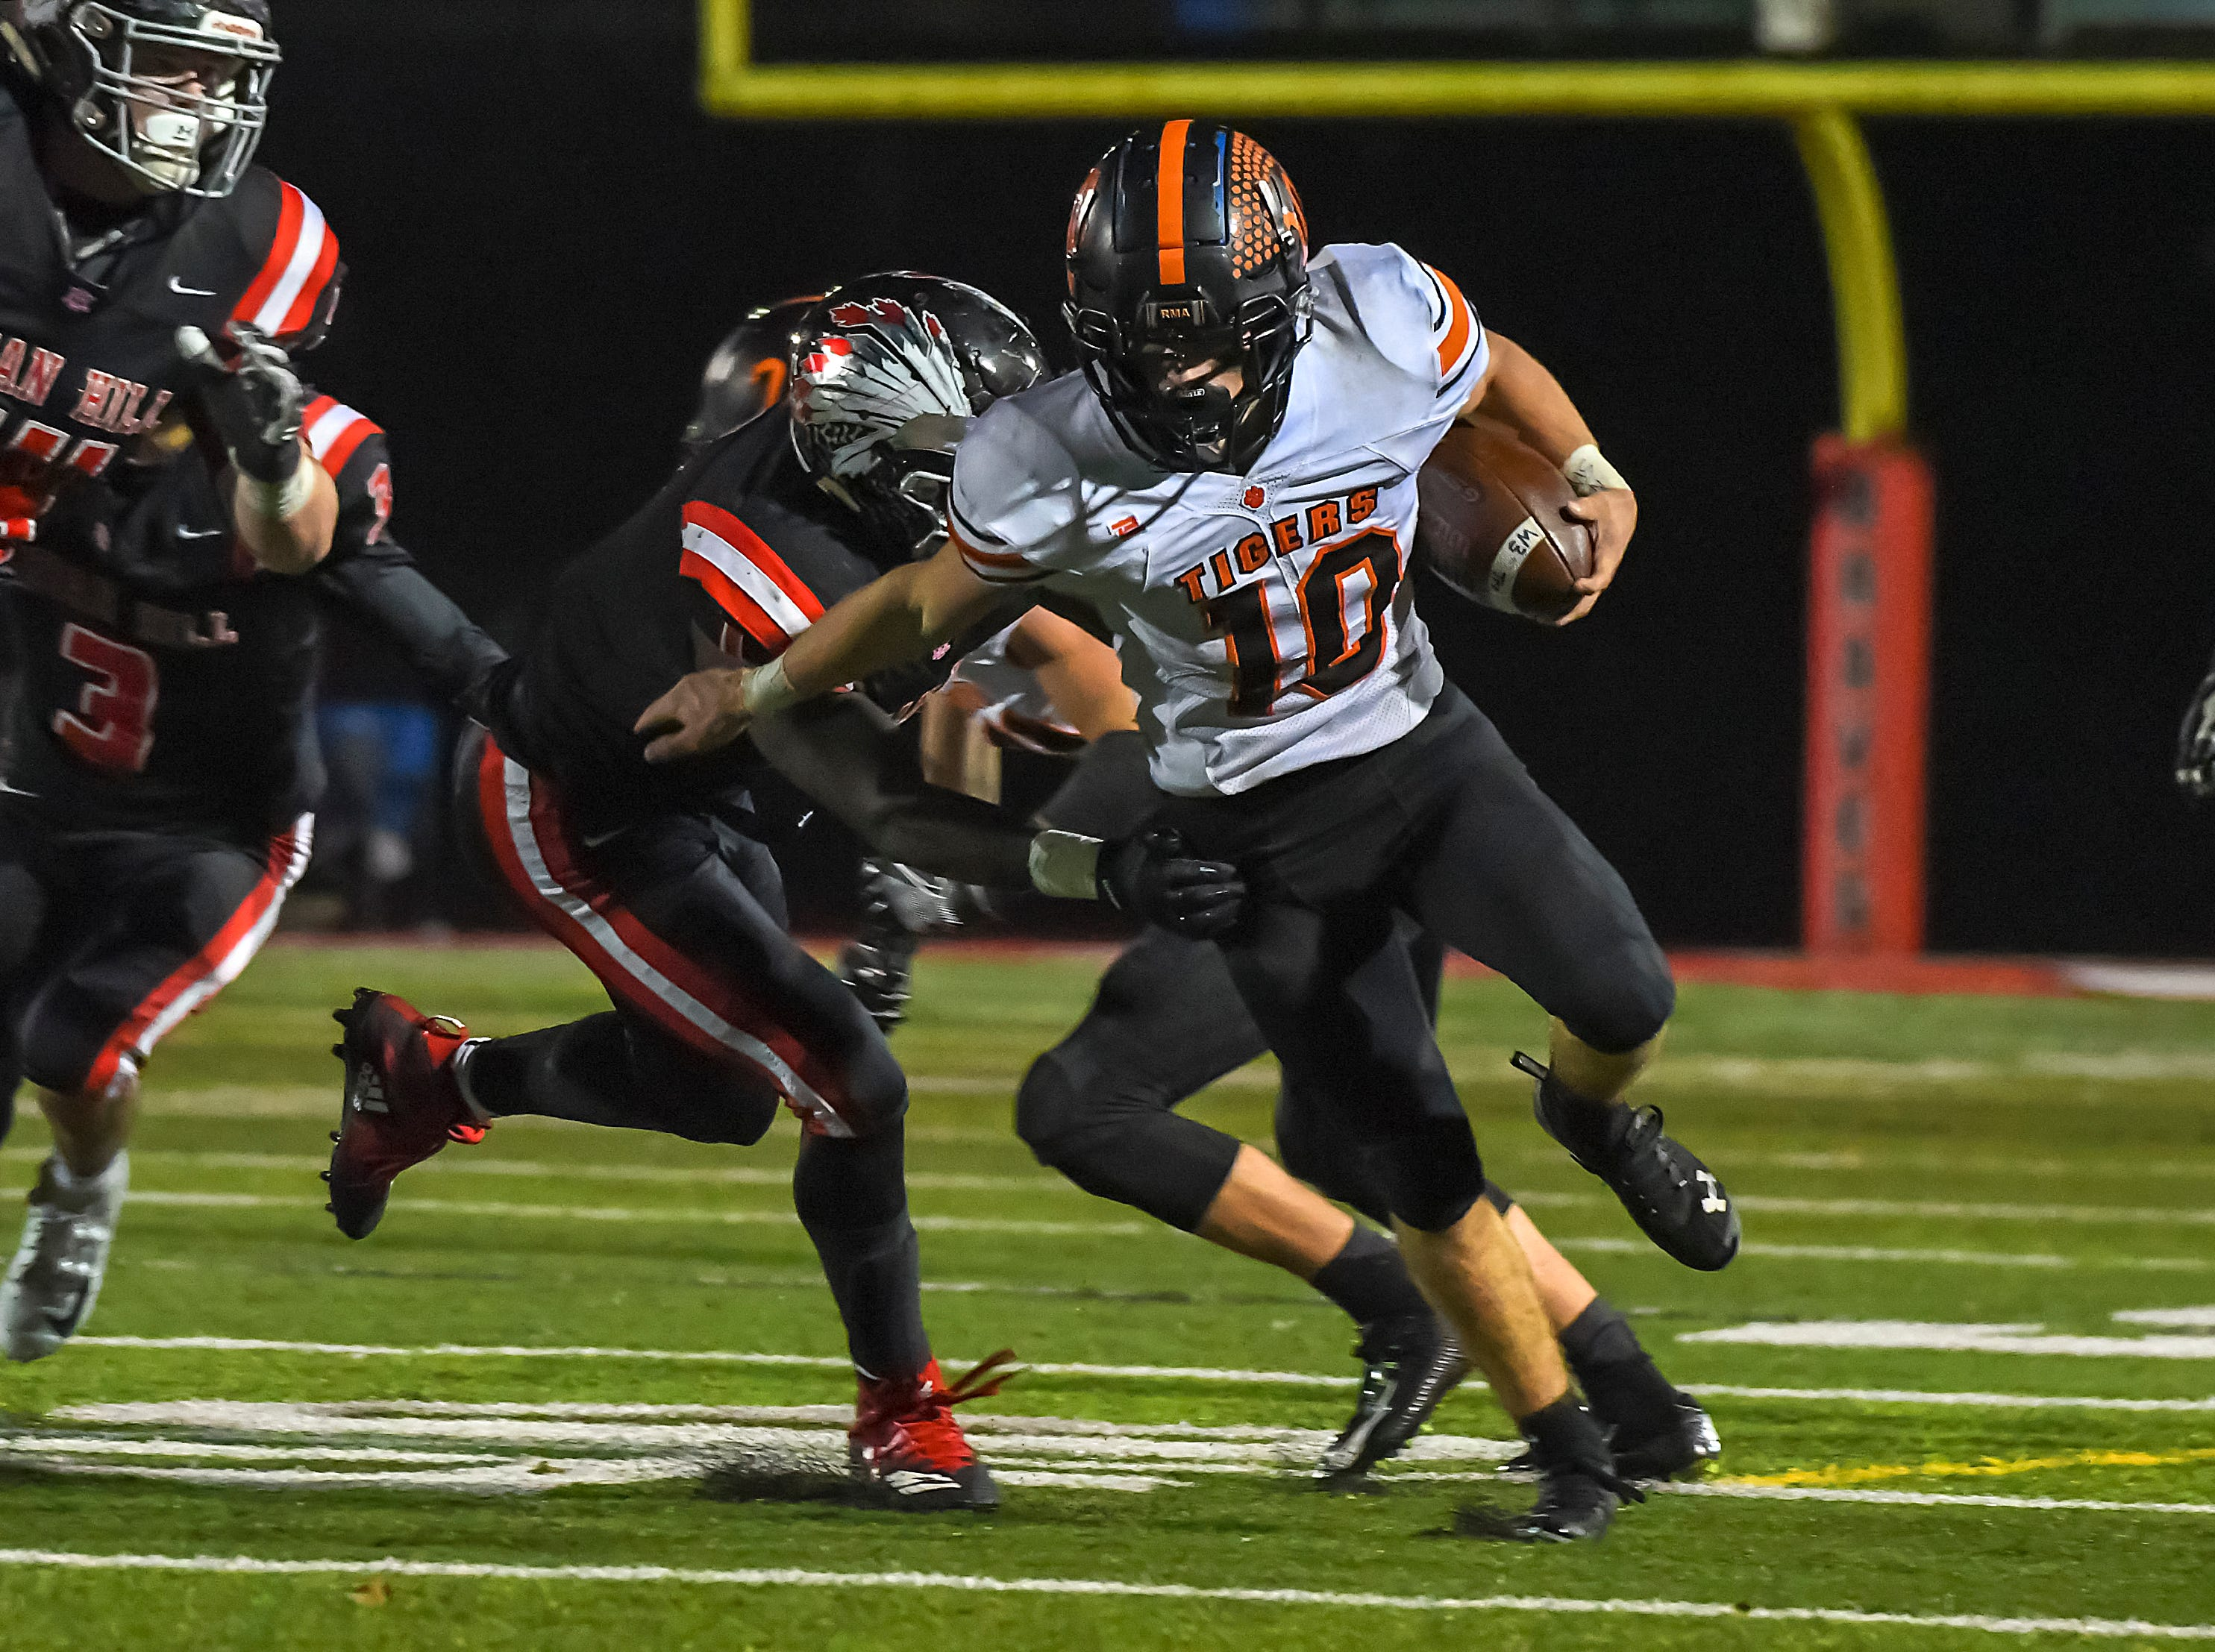 Payton Shoemaker (10) of Waverly runs past Indian Hill defenders in the OHSAA D4 Region 16 Playoffs at Indian Hill High School, Saturday, Nov. 3, 2018